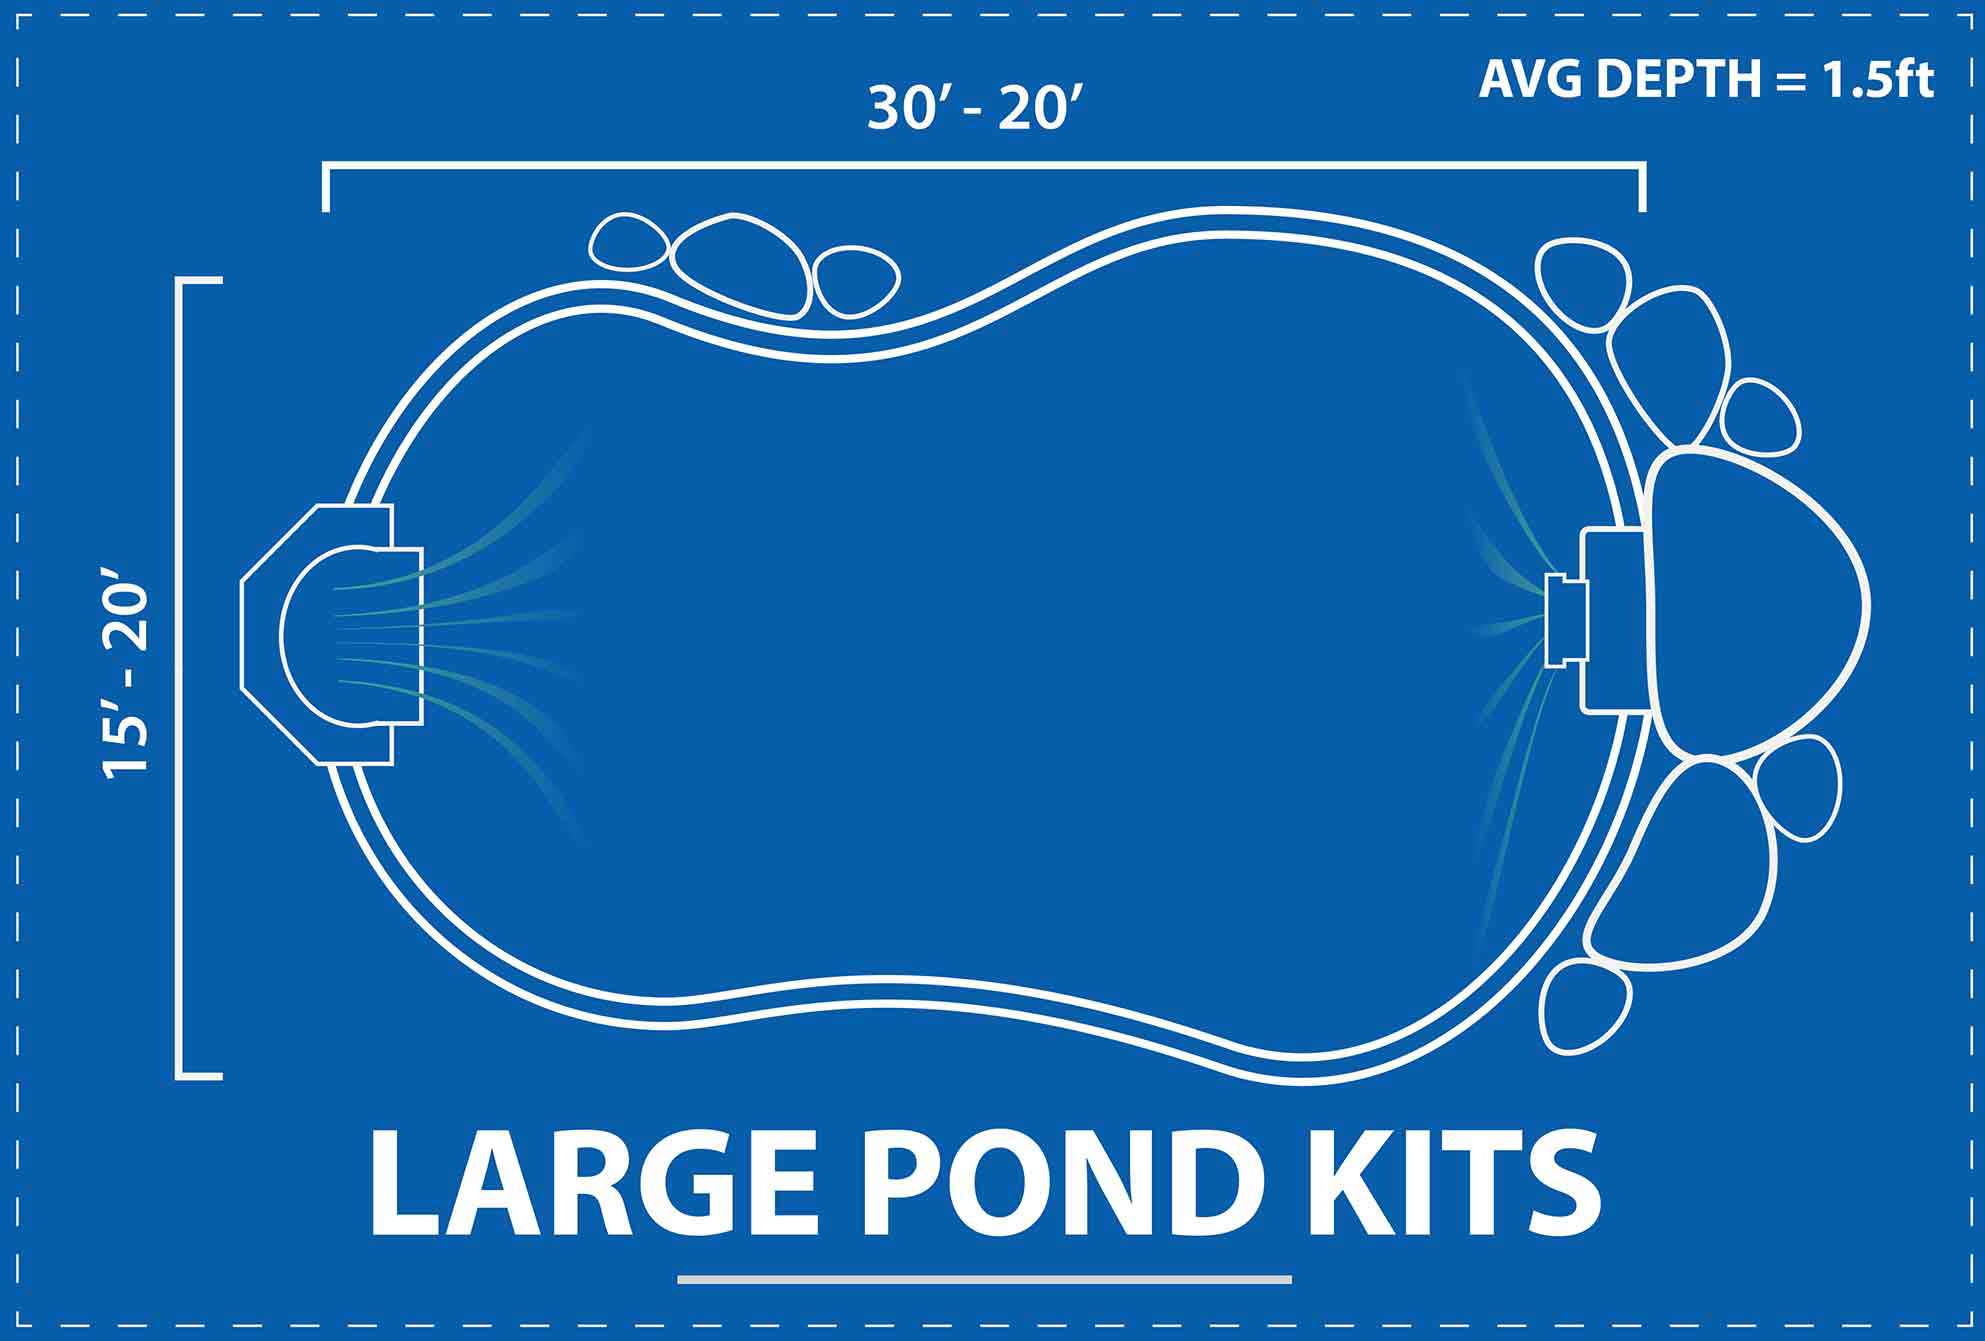 Large Pond Kits